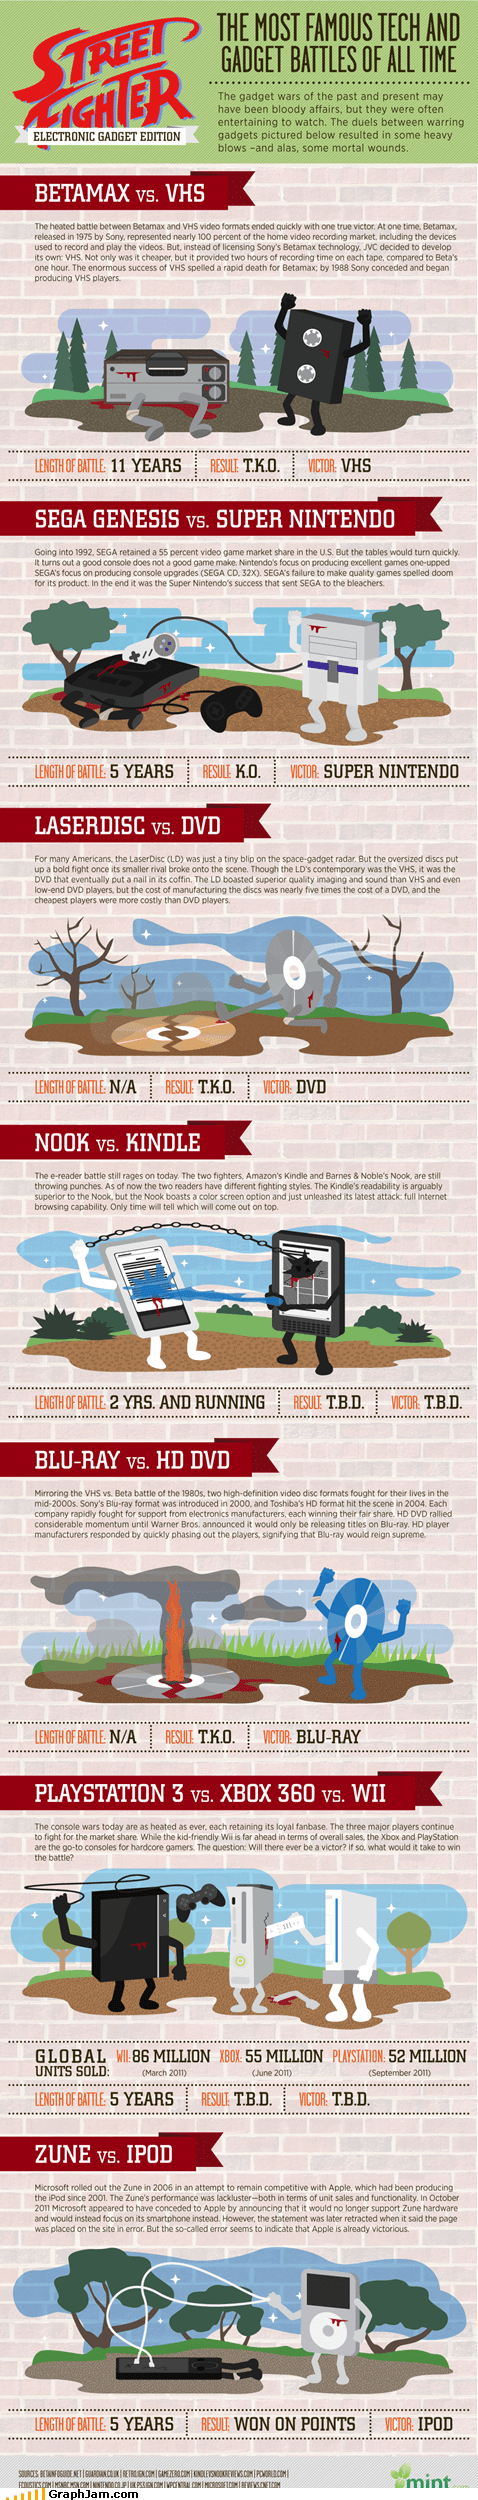 betamax,blu ray,infographic,ipod,kindle,nook,ps3,sega,snes,Street fighter,wii,xbox